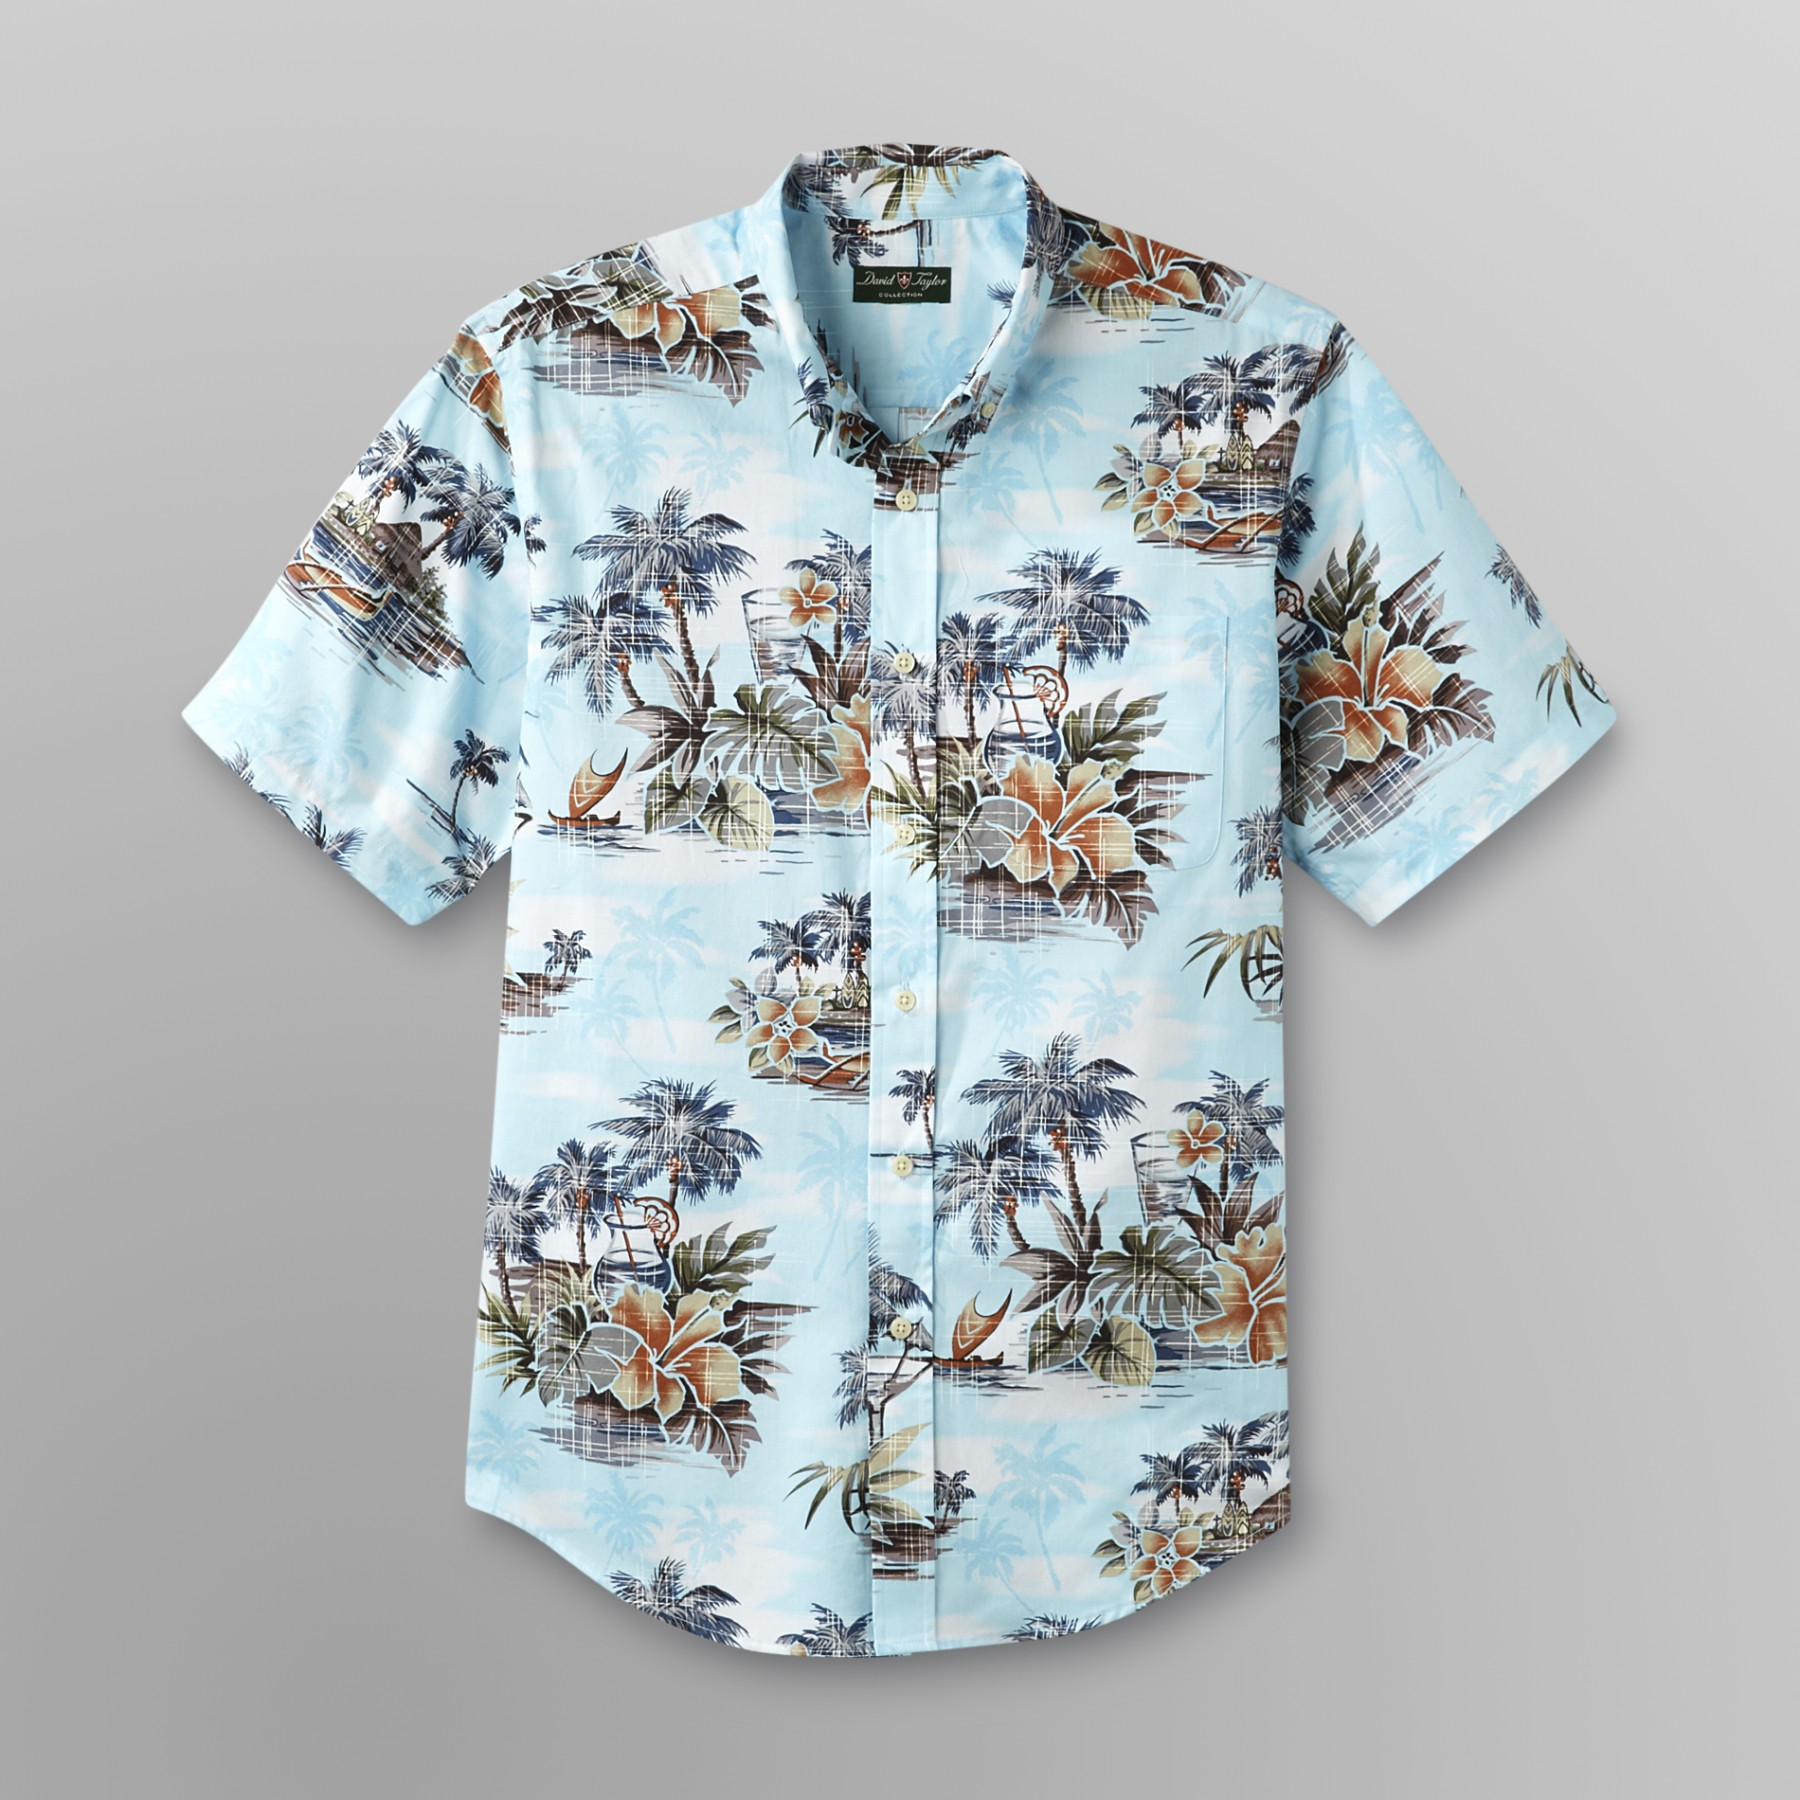 David Taylor Men's Tropical Shirt at Kmart.com